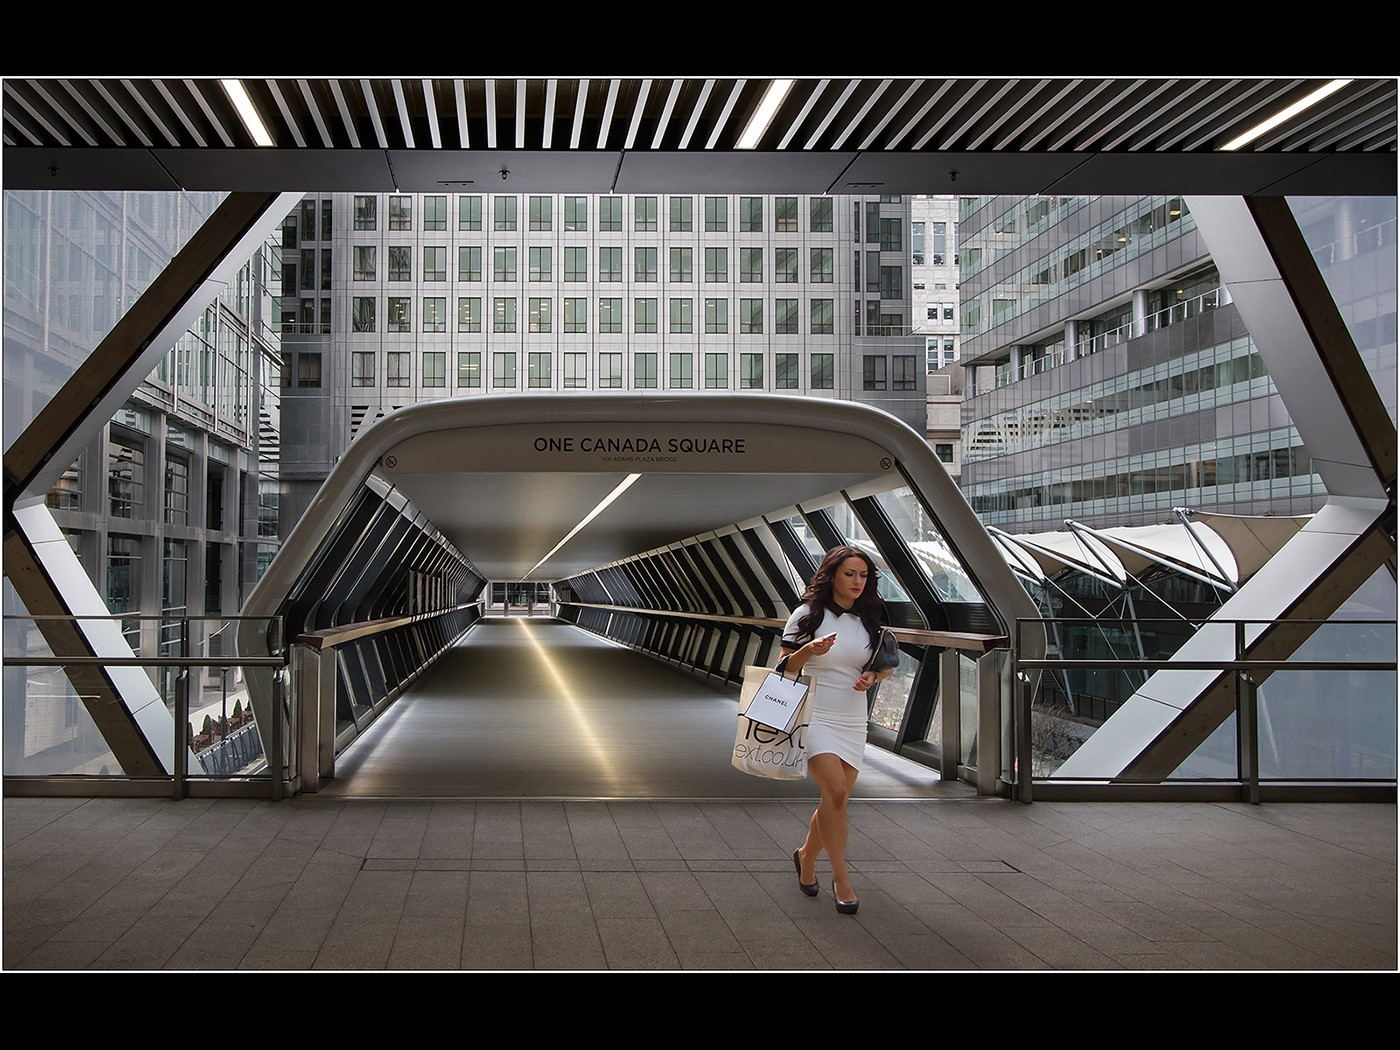 Canary Wharf - Entrance to Crossrail